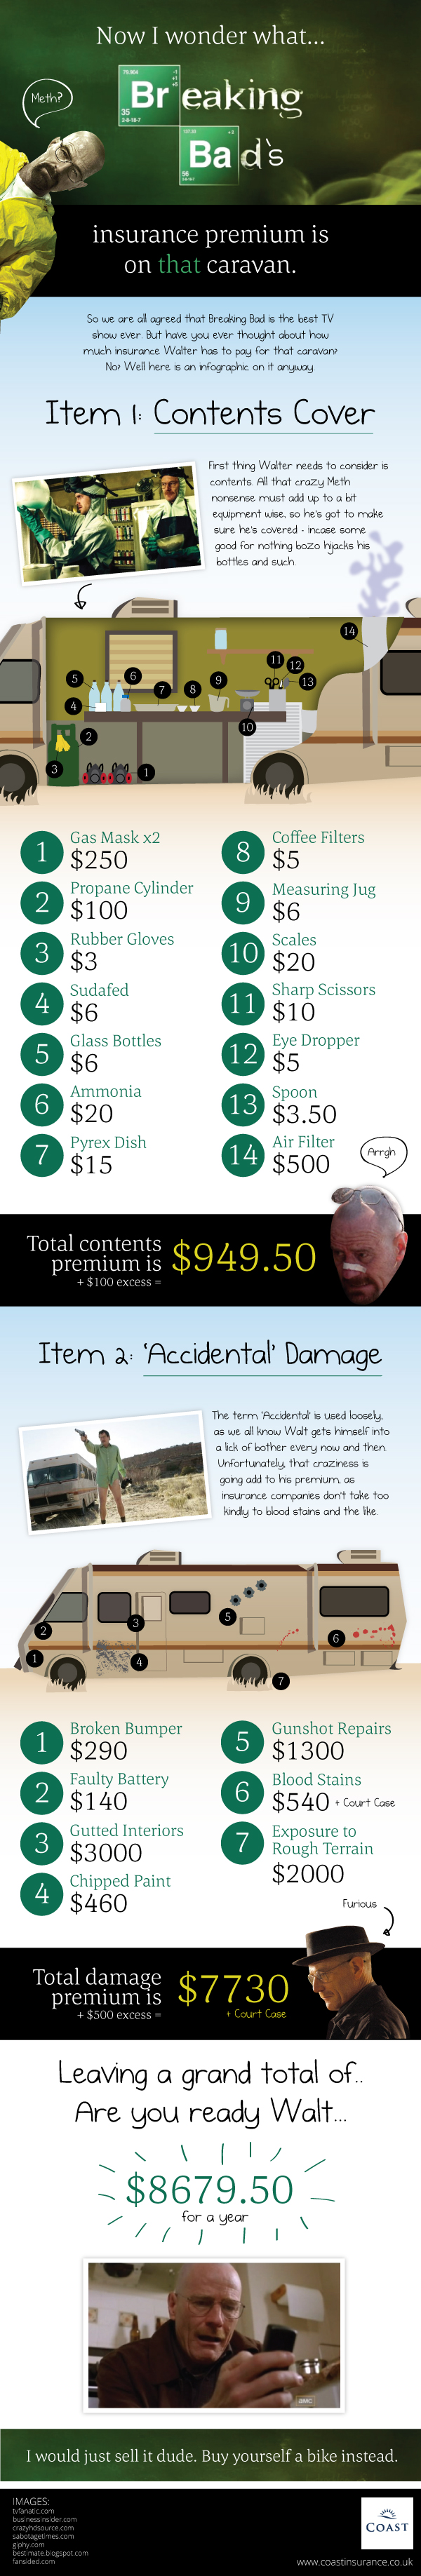 How much would Breaking Bad's Caravan cost to insure?